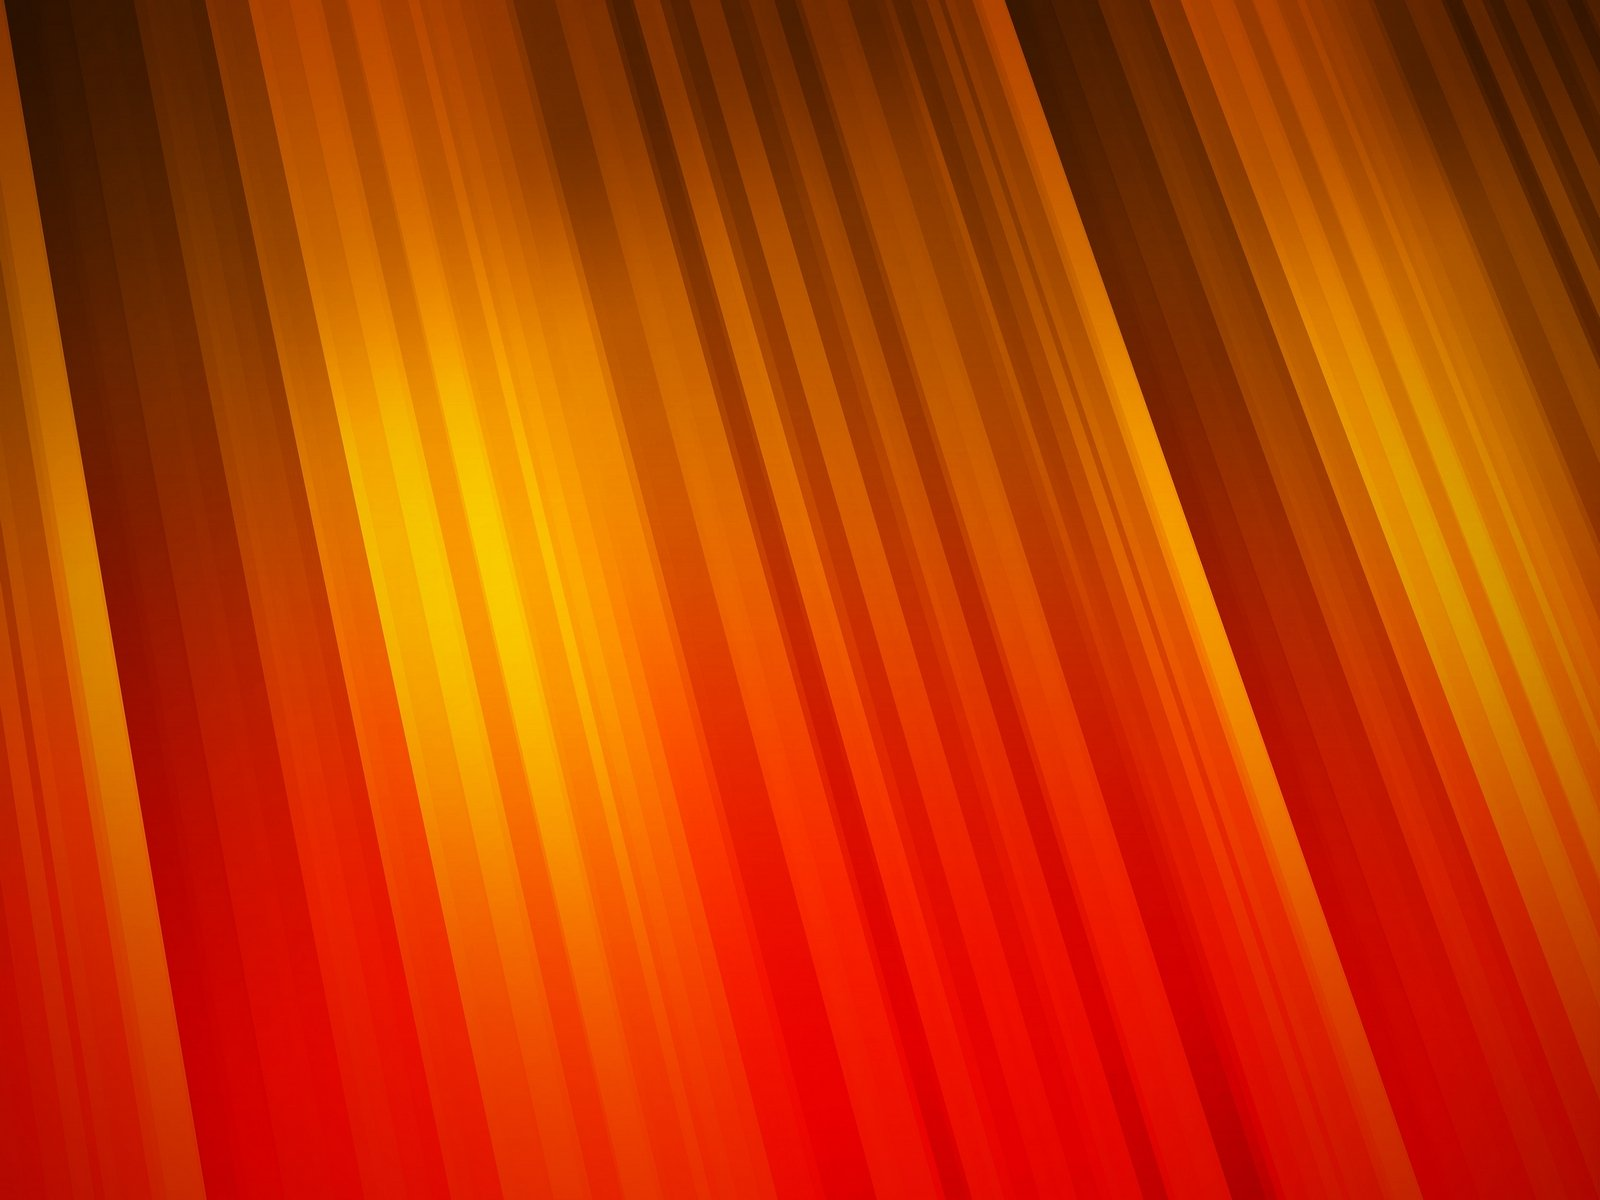 Orange wallpaper   Orange Wallpaper 23886950 1600x1200